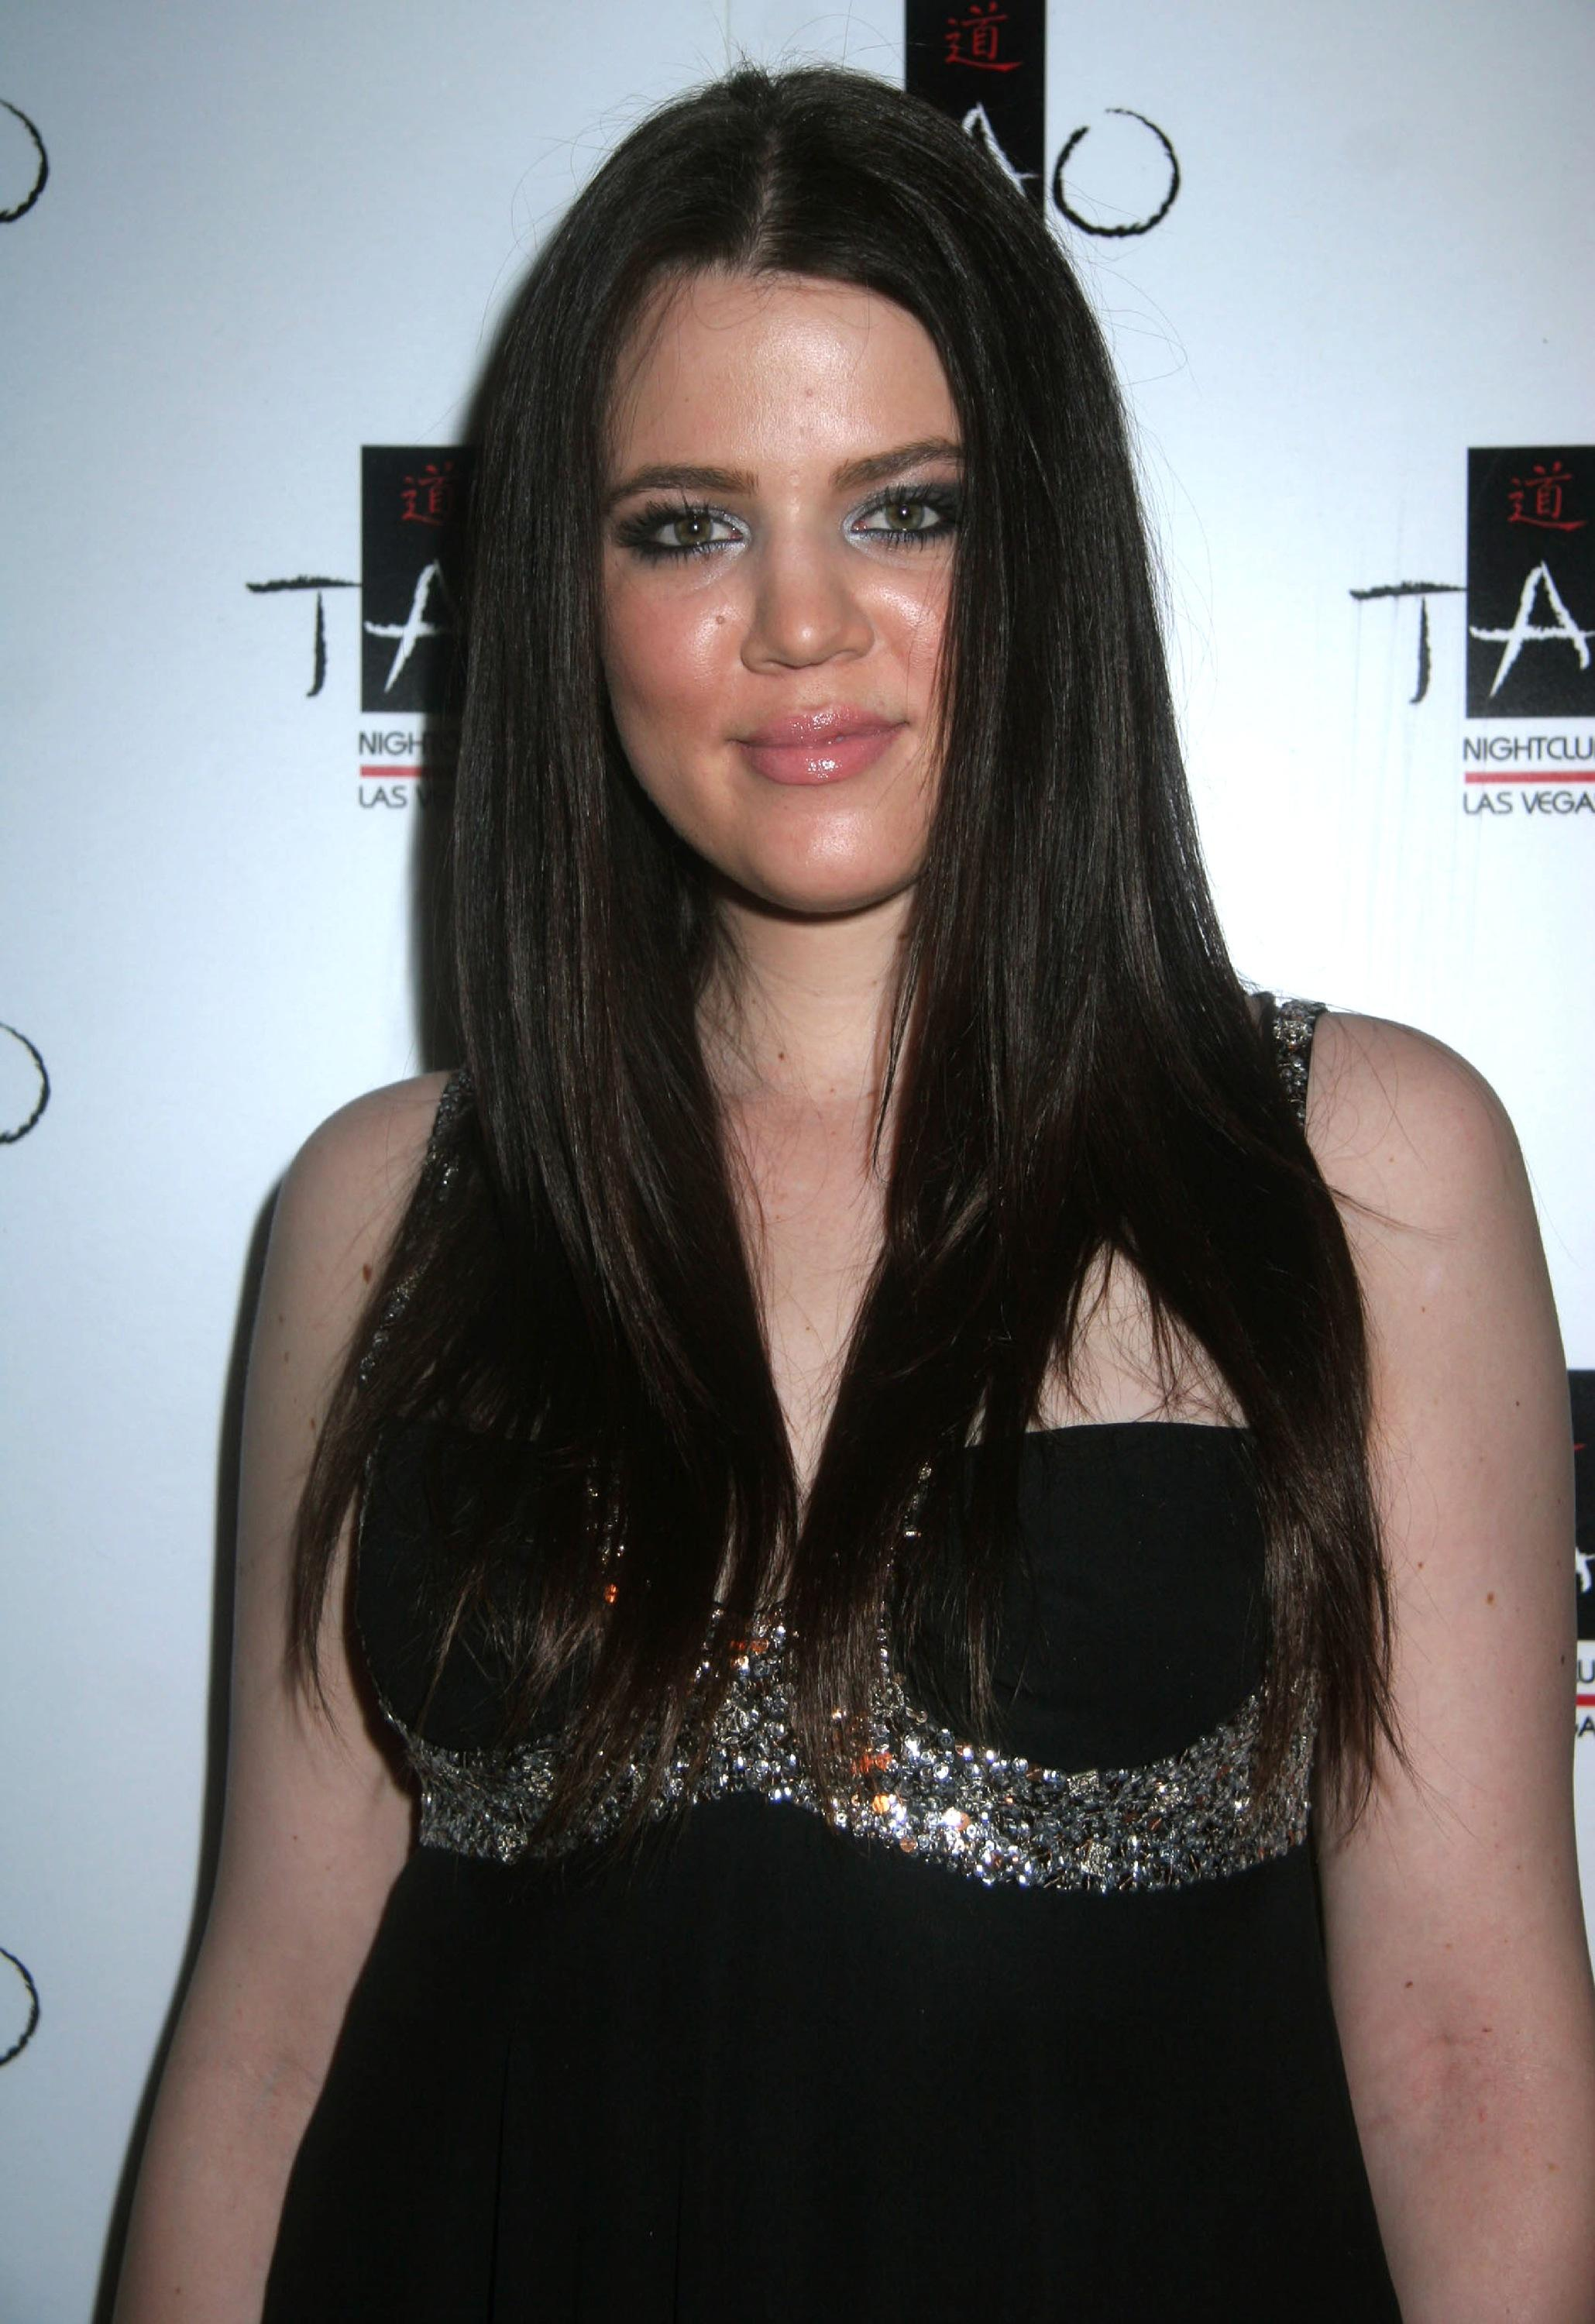 Khole Kardashion Before And After Plastic Surgery photo - 1